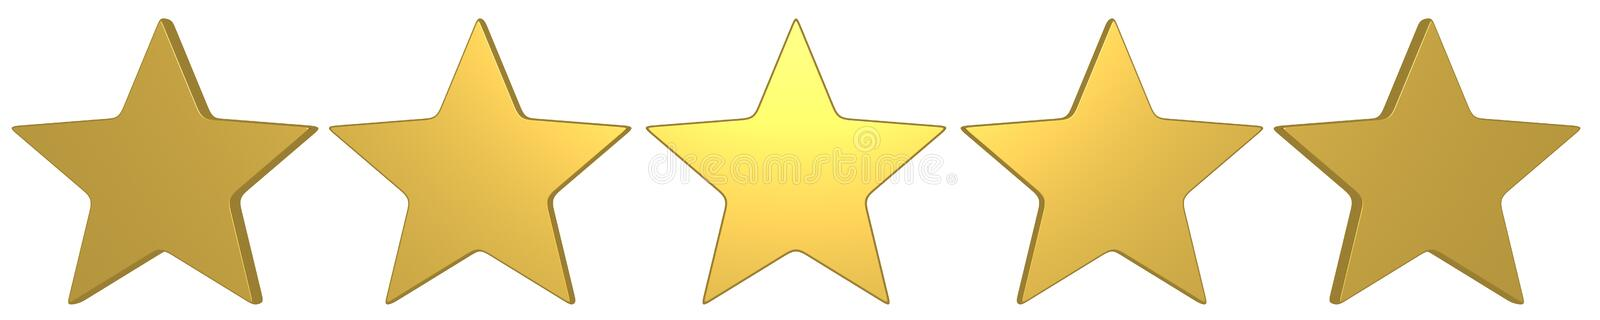 5 gold stars best score. 5 gold stars, great mark, excellent review result, maximal score, rate system stock illustration